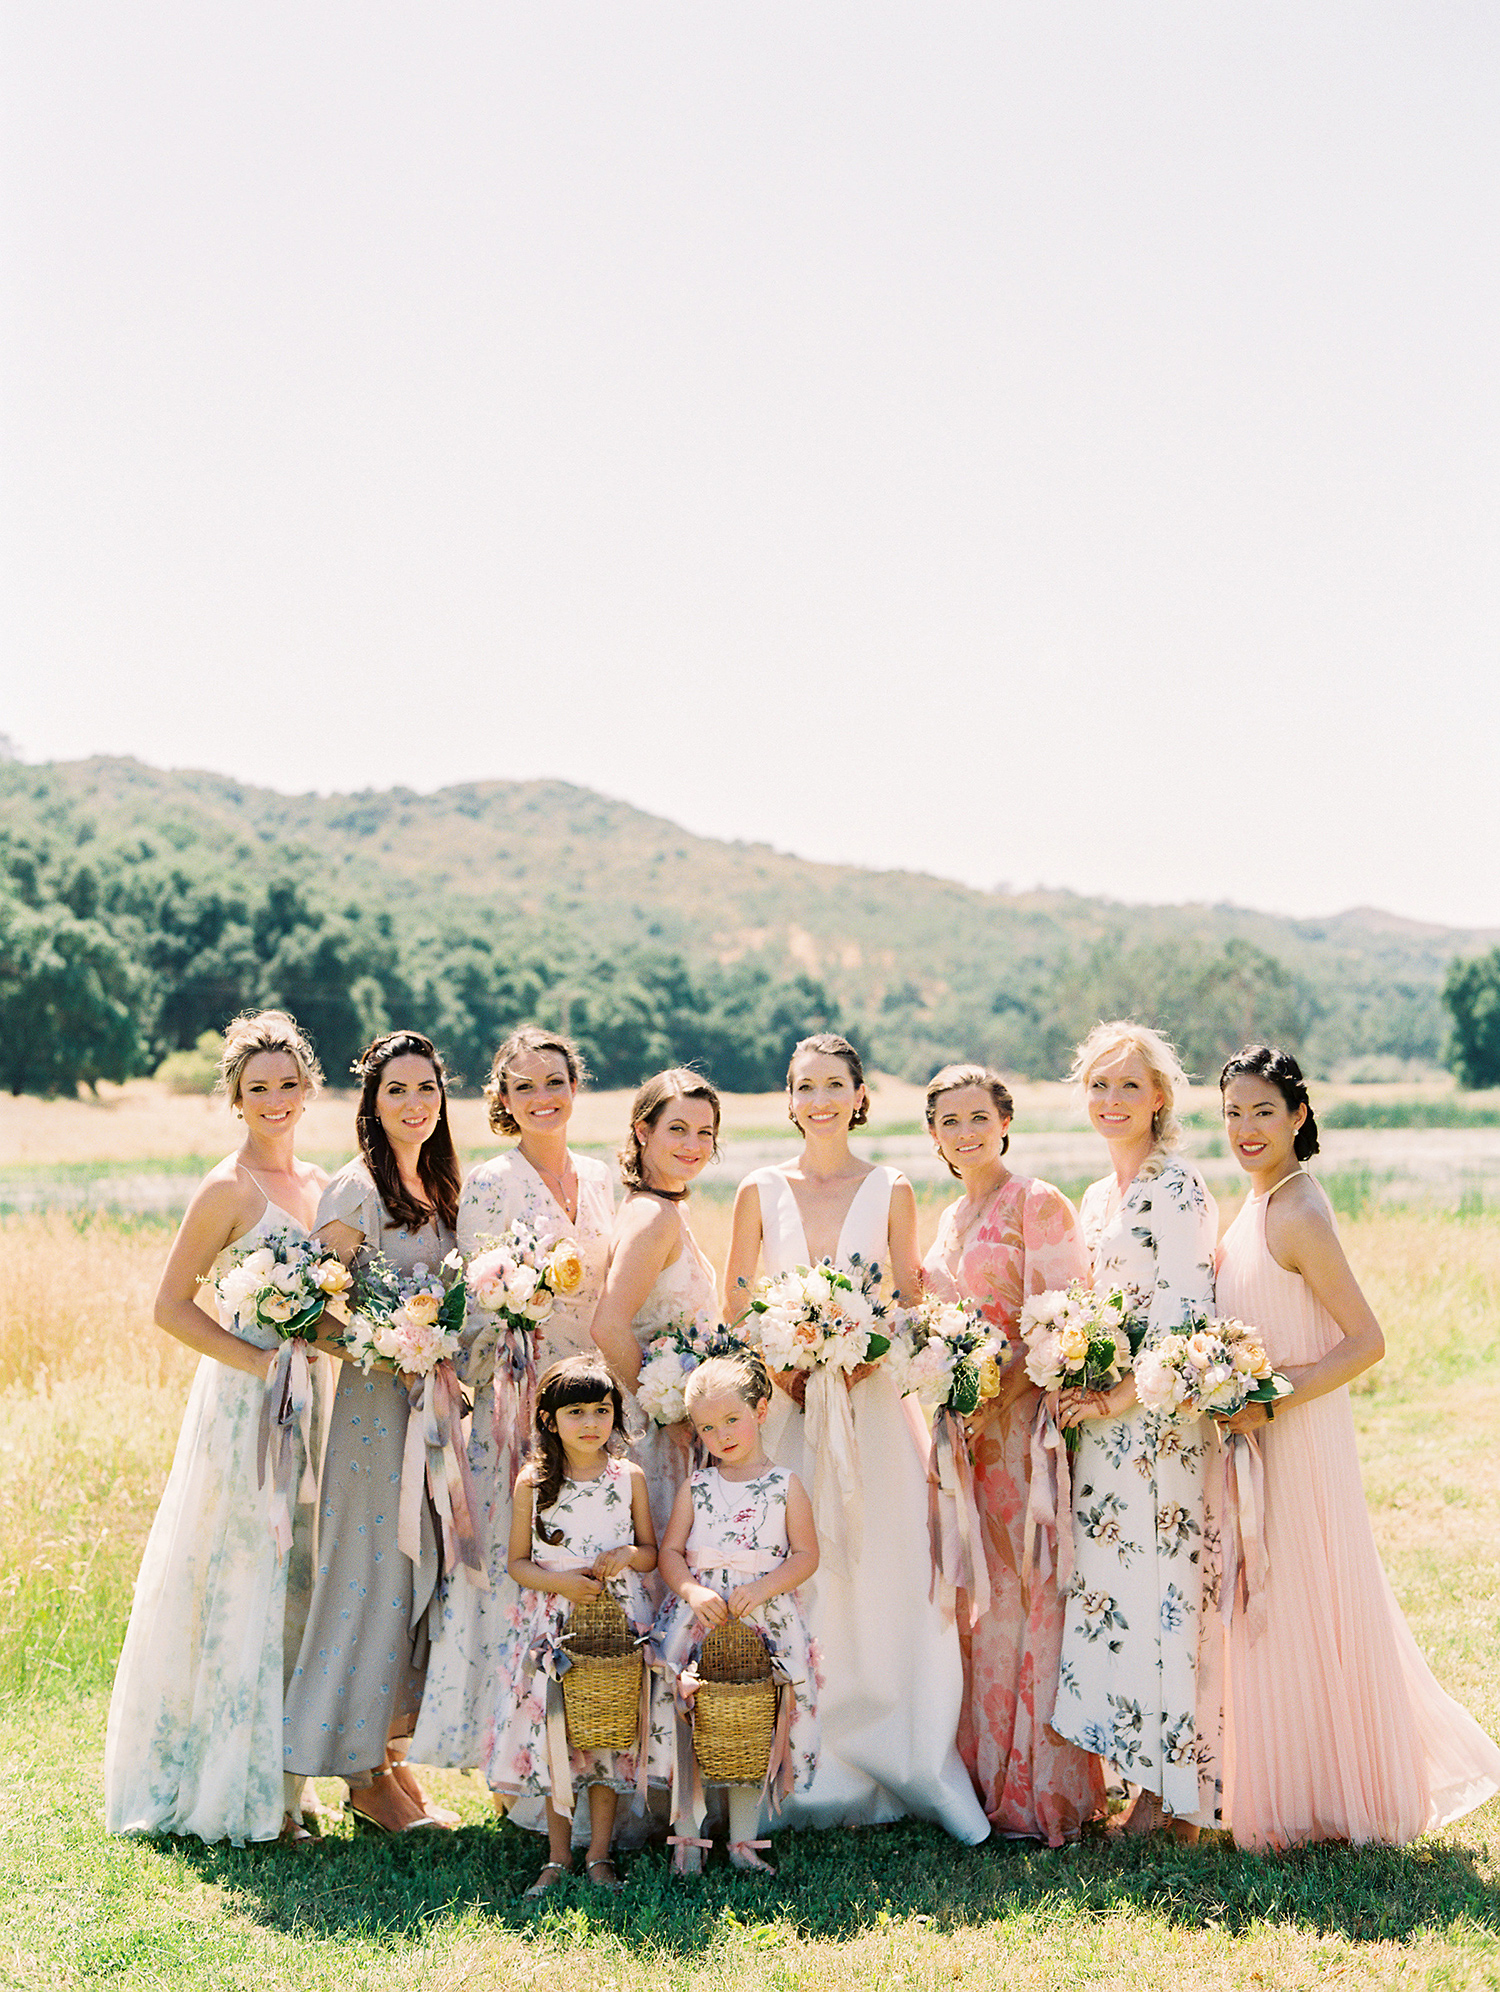 caitlin amit wedding bride with bridesmaids